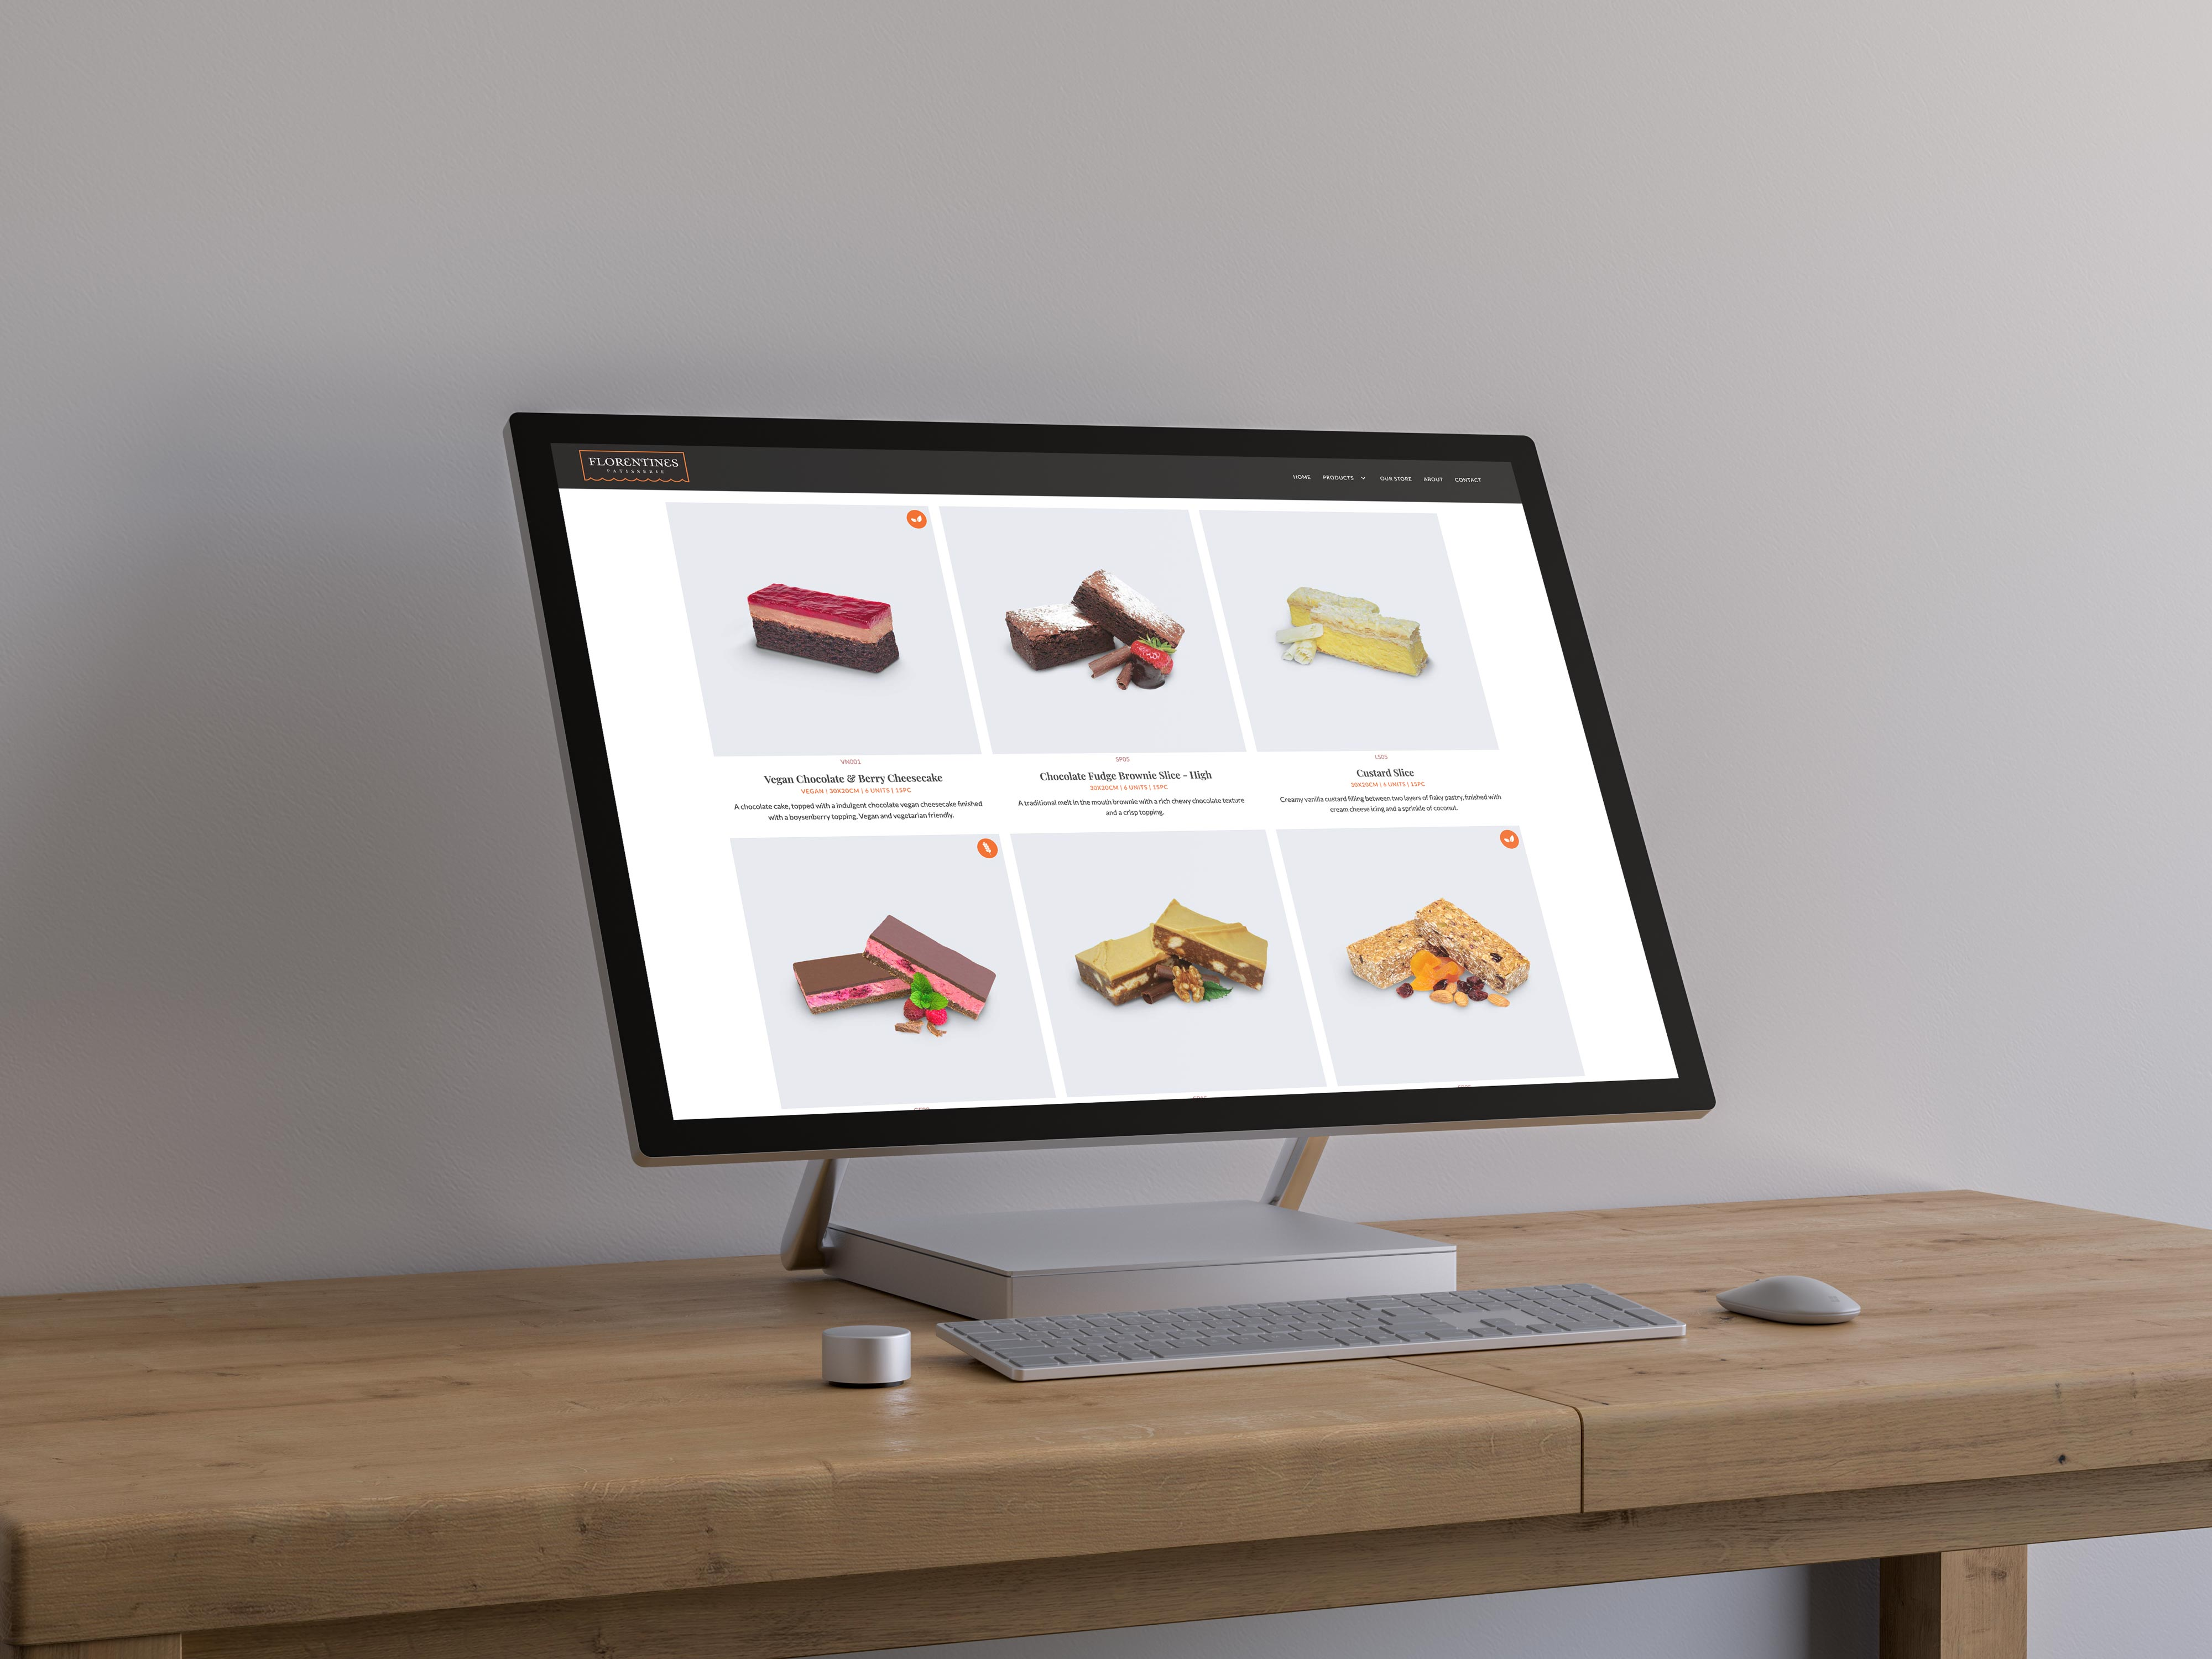 A desktop computer showing a list of patisseries from the Florentines website.